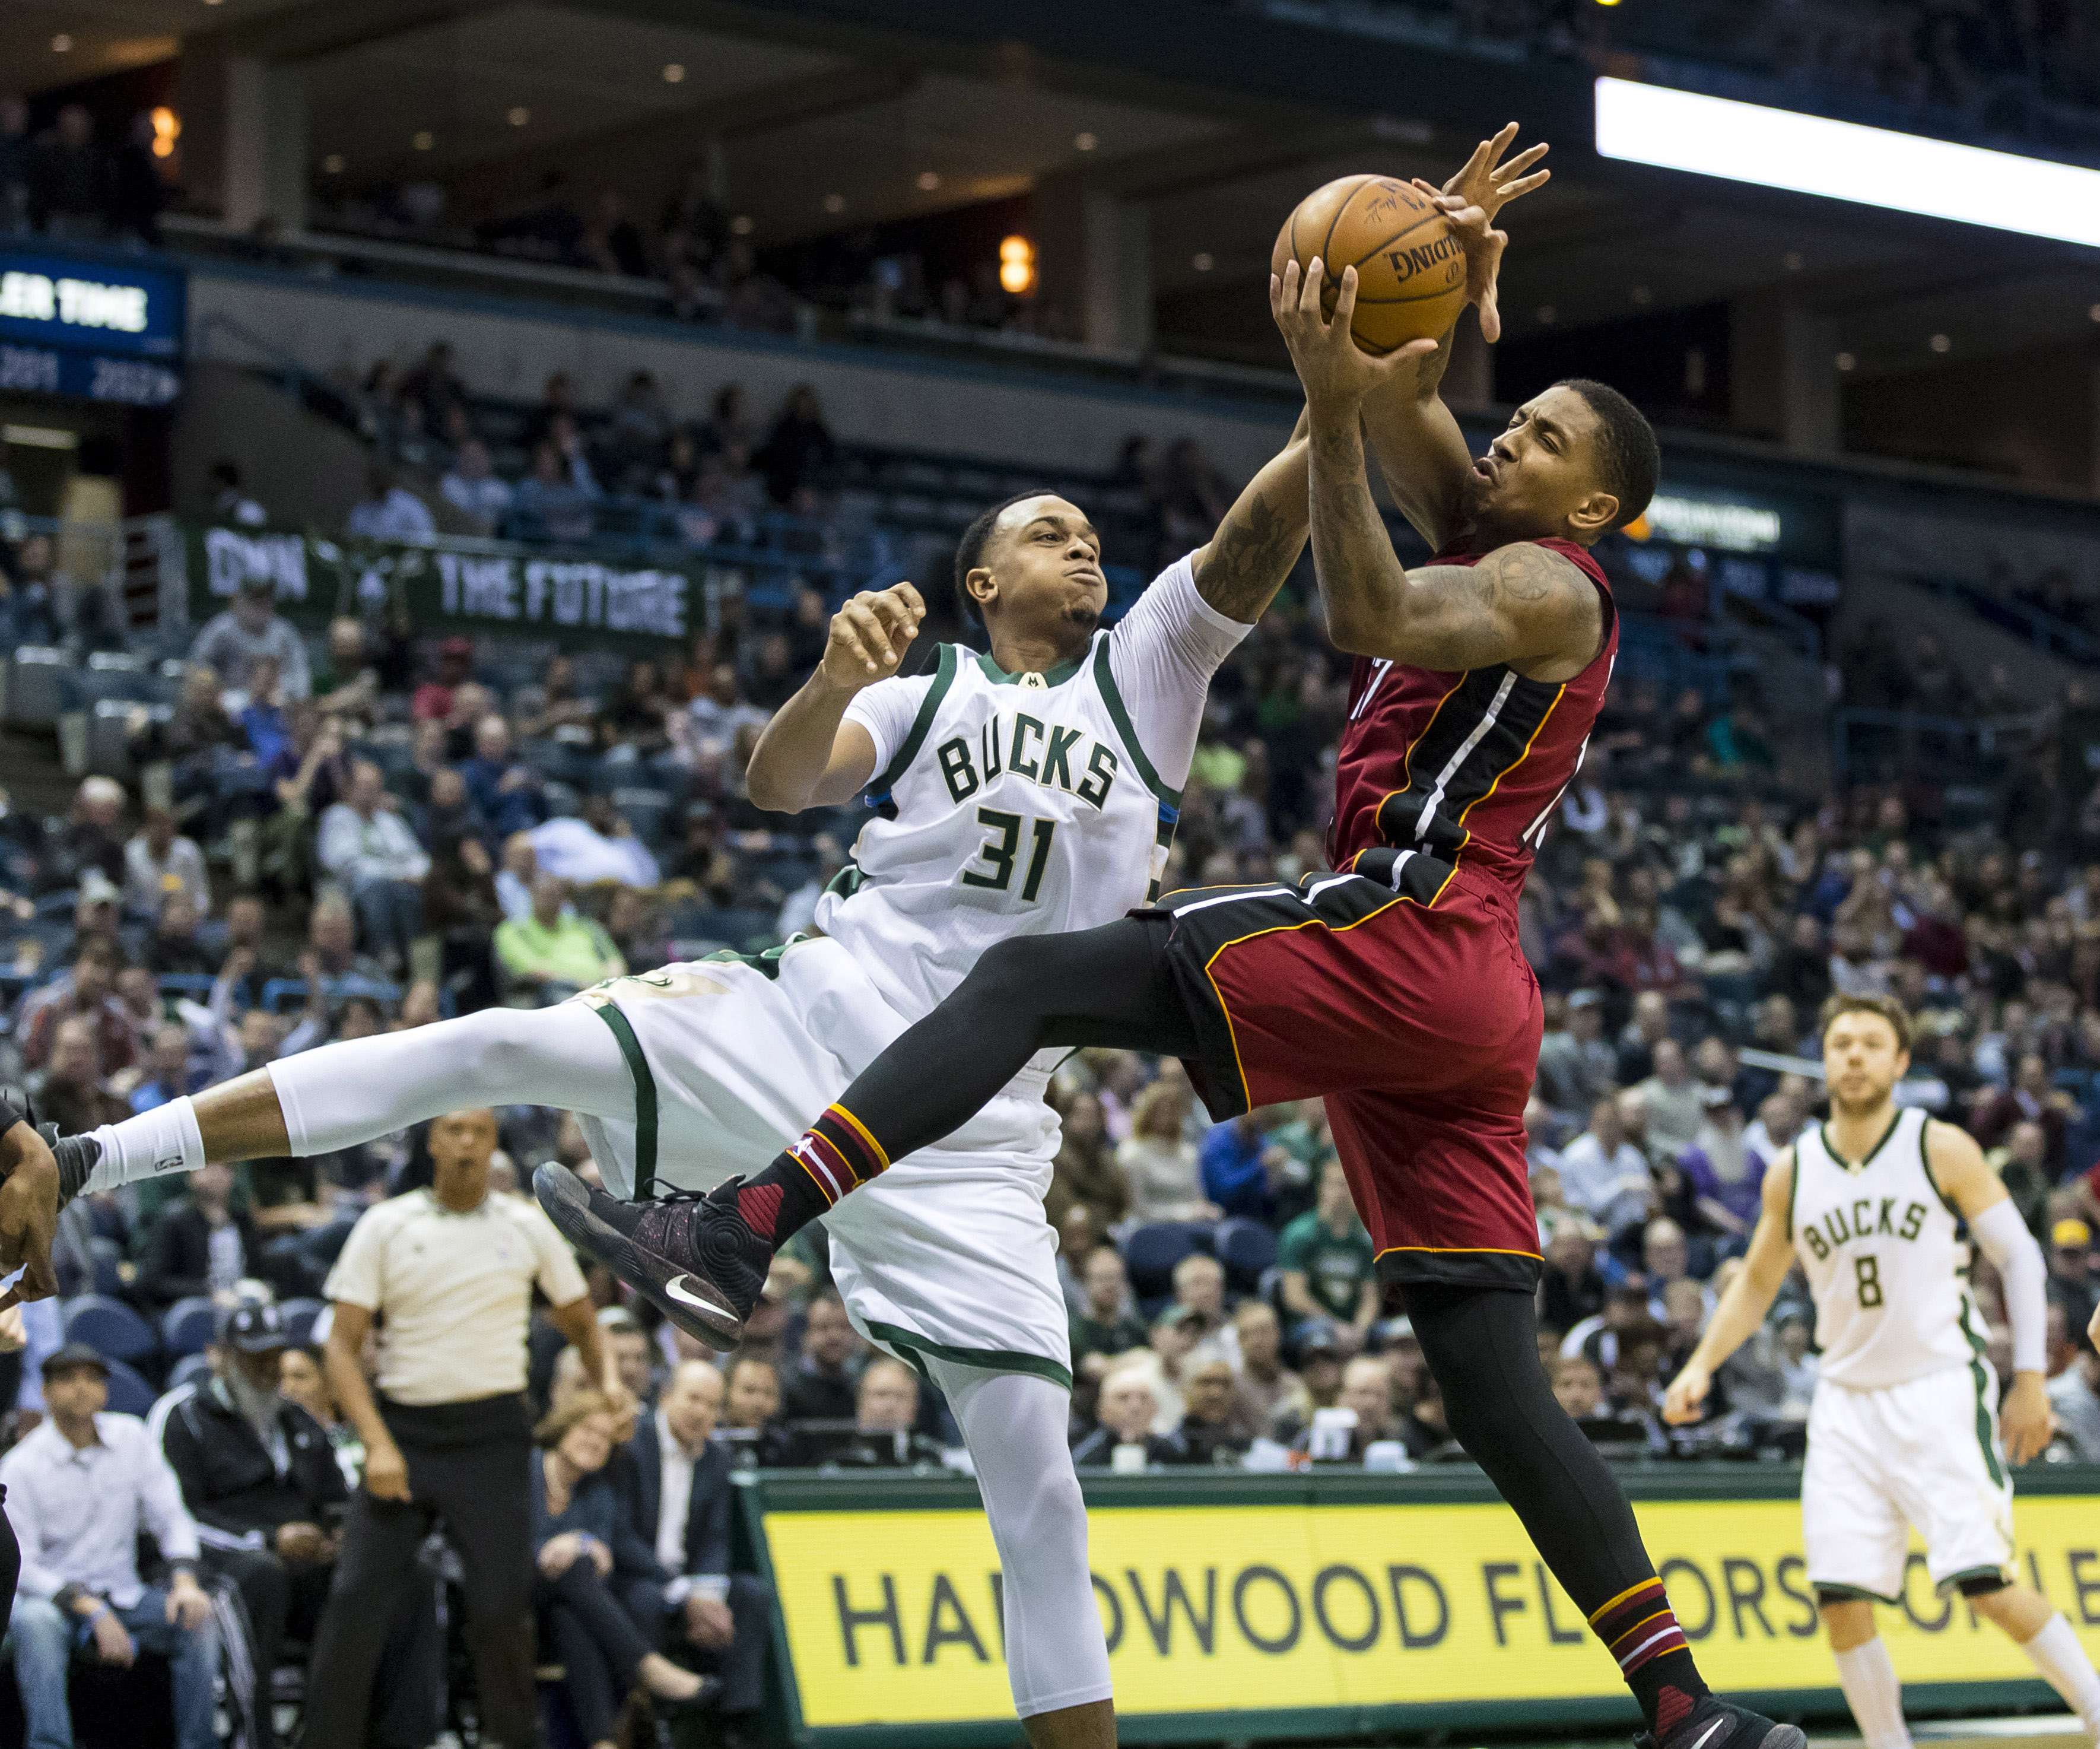 Feb 8, 2017; Milwaukee, WI, USA; Milwaukee Bucks center John Henson (31) and Miami Heat guard Rodney McGruder (17) reach for the ball during the third quarter at BMO Harris Bradley Center. Mandatory Credit: Jeff Hanisch-USA TODAY Sports